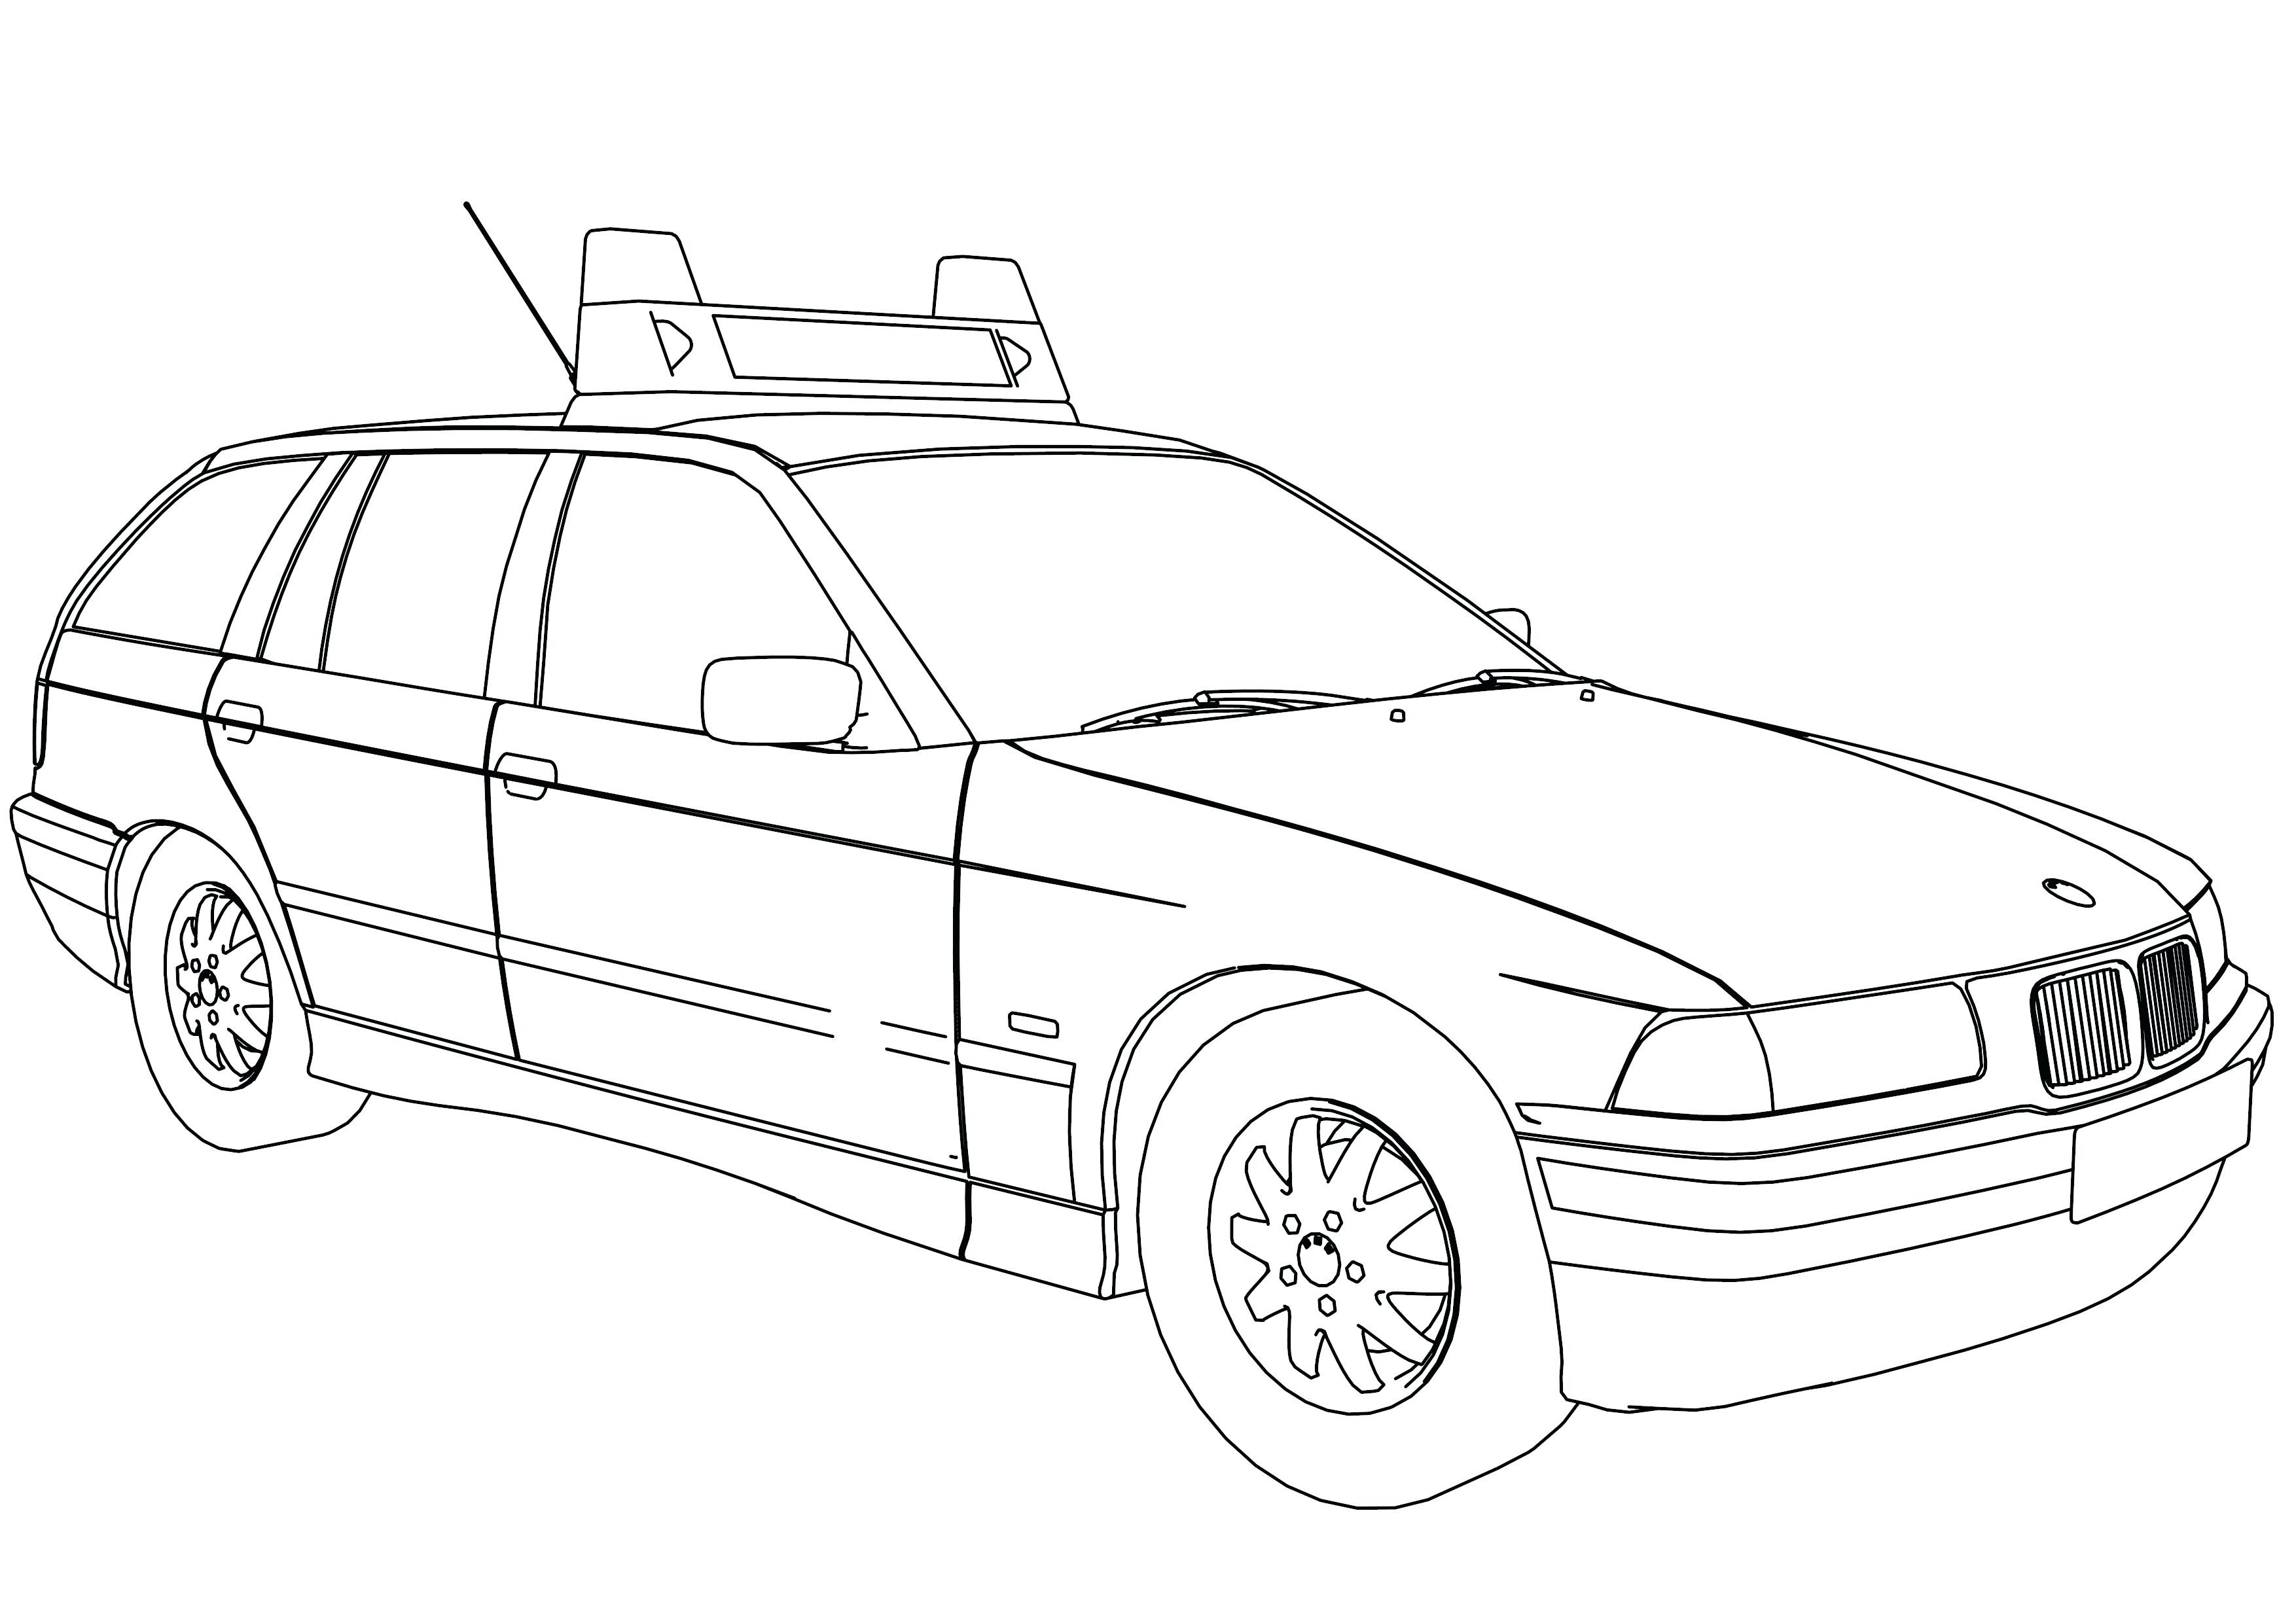 3508x2480 Police Car Coloring Pages Printable Unique Police Vehicle Coloring